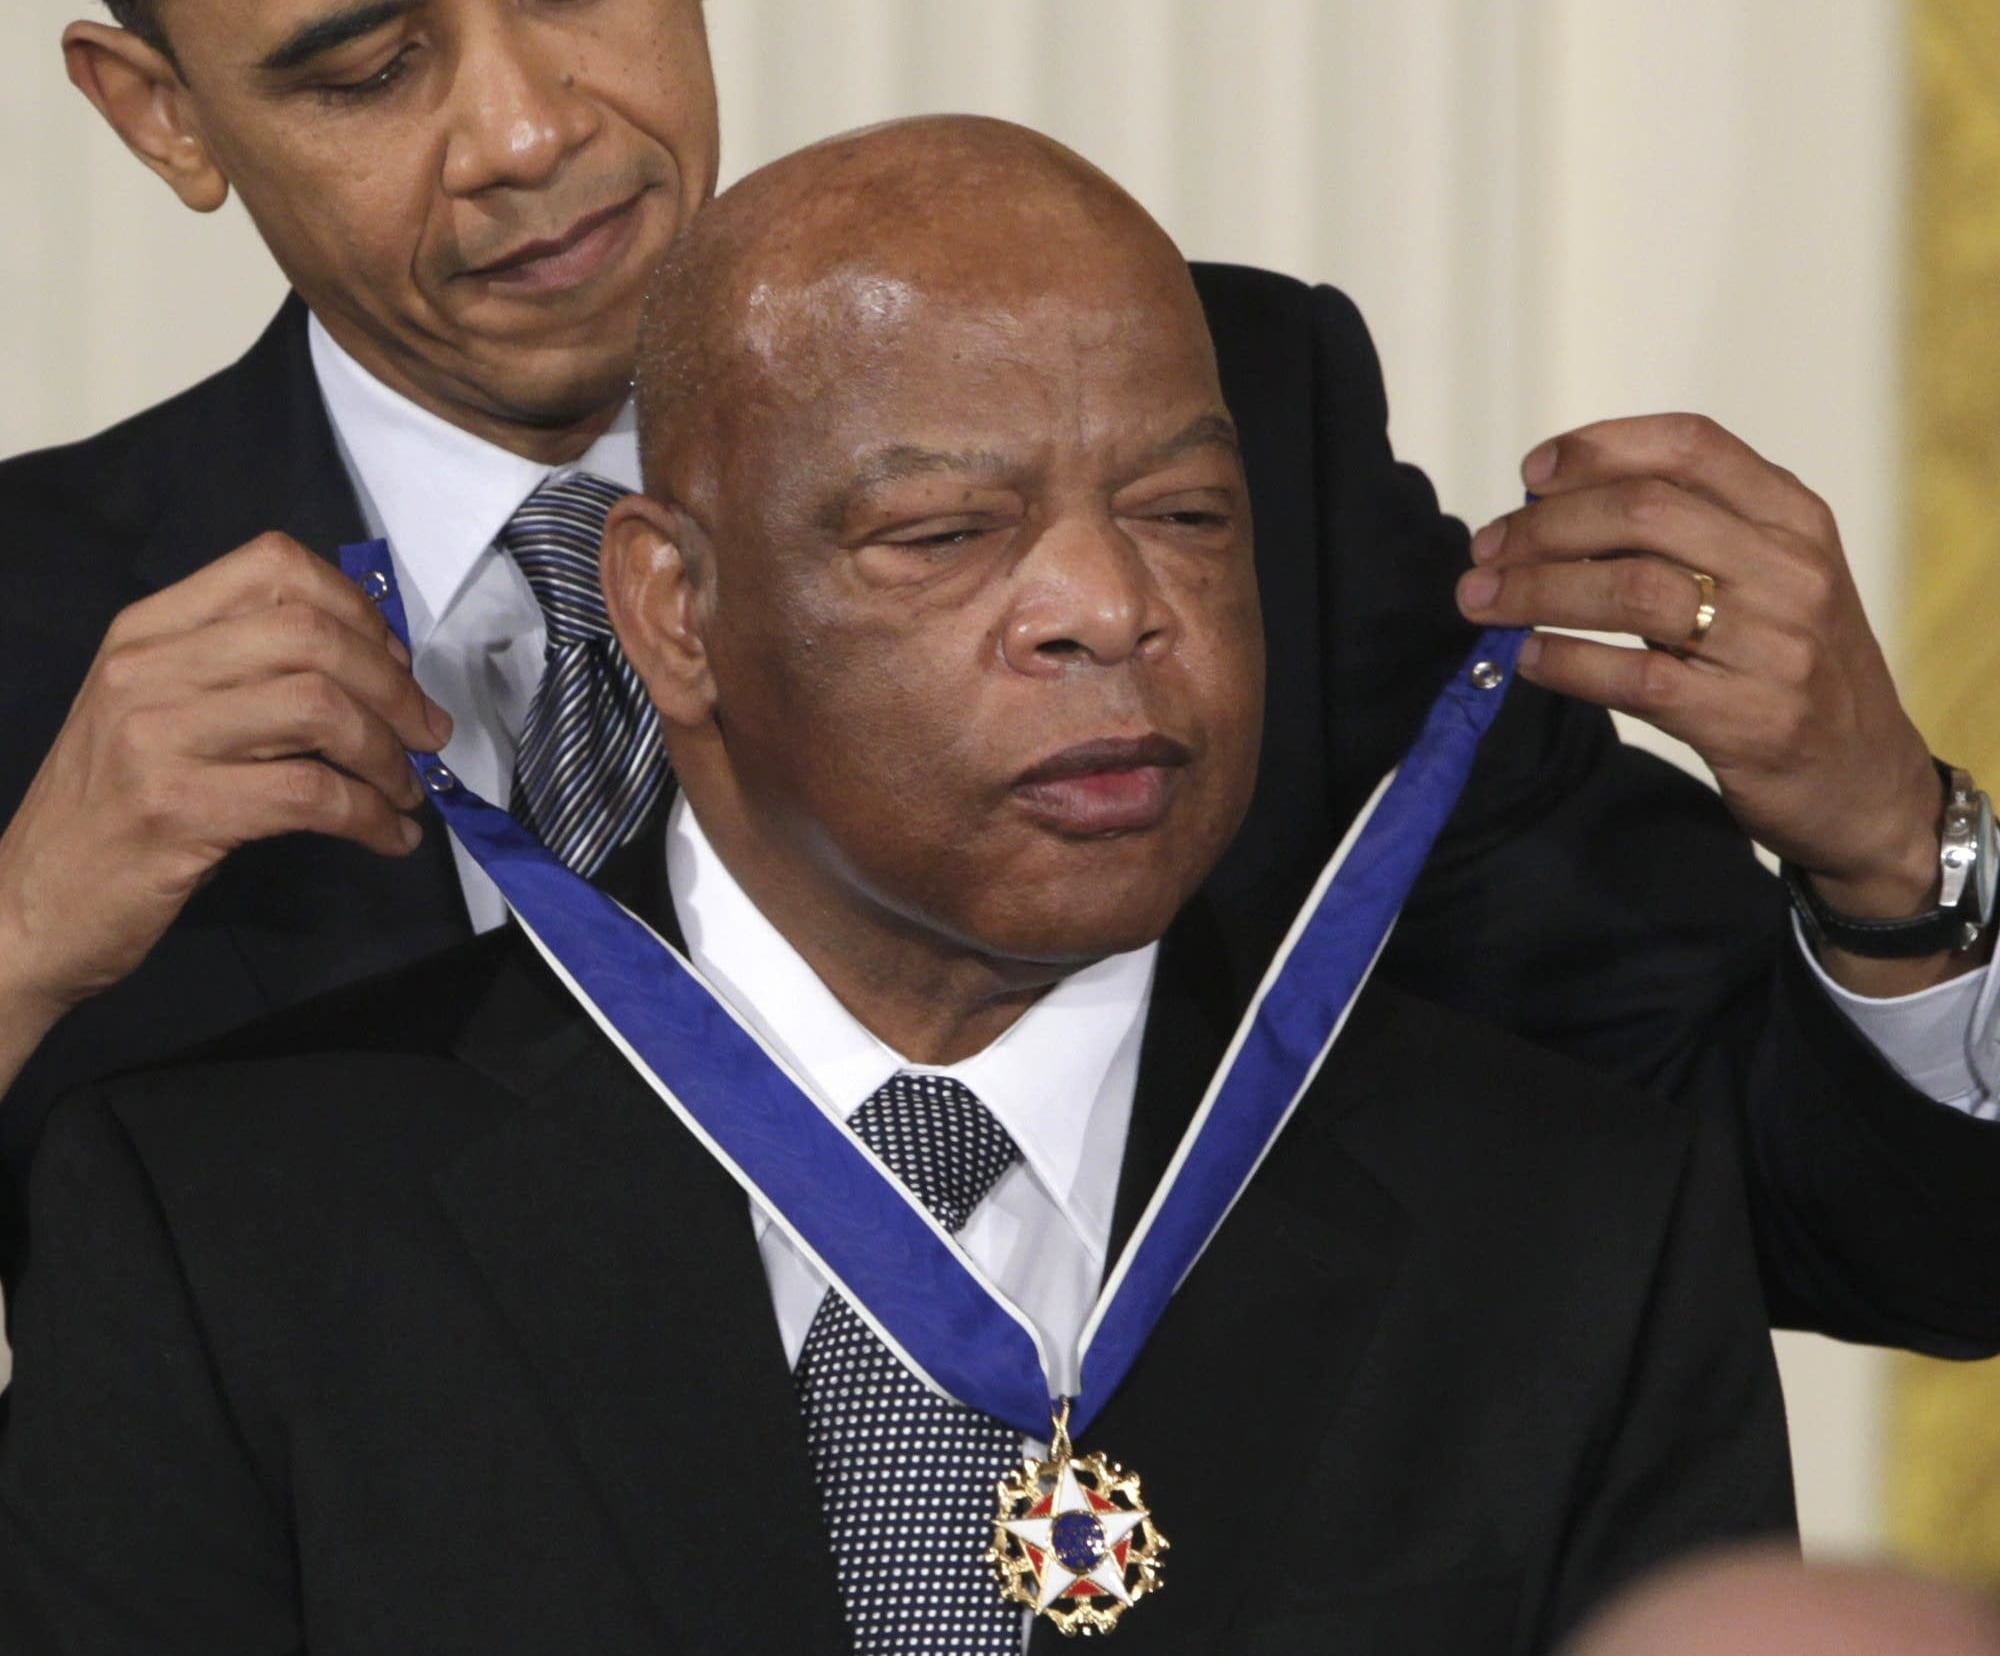 President Barack Obama awards the 2010 Presidential Medal of Freedom to Congressman John Lewis in a ceremony in the East Room of the White House.